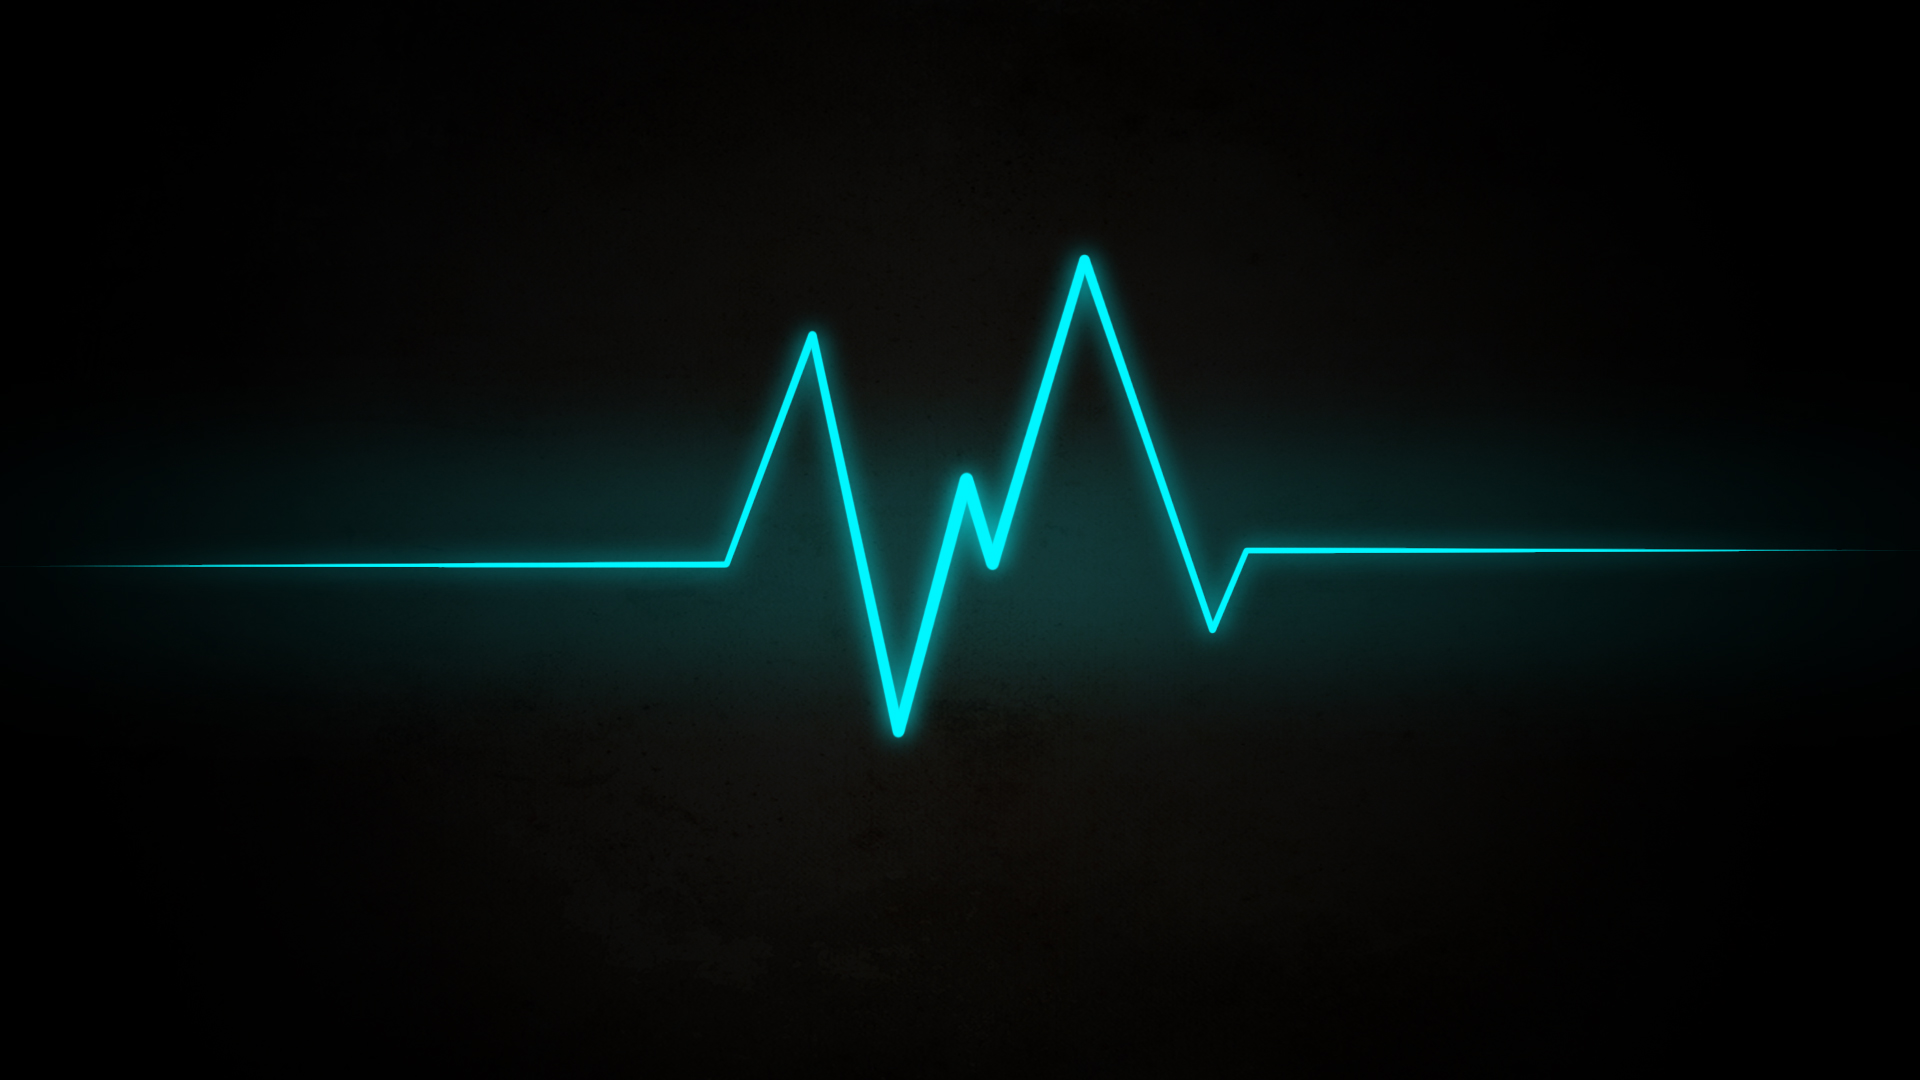 Wave Heartbeat Abstract 1920x1080